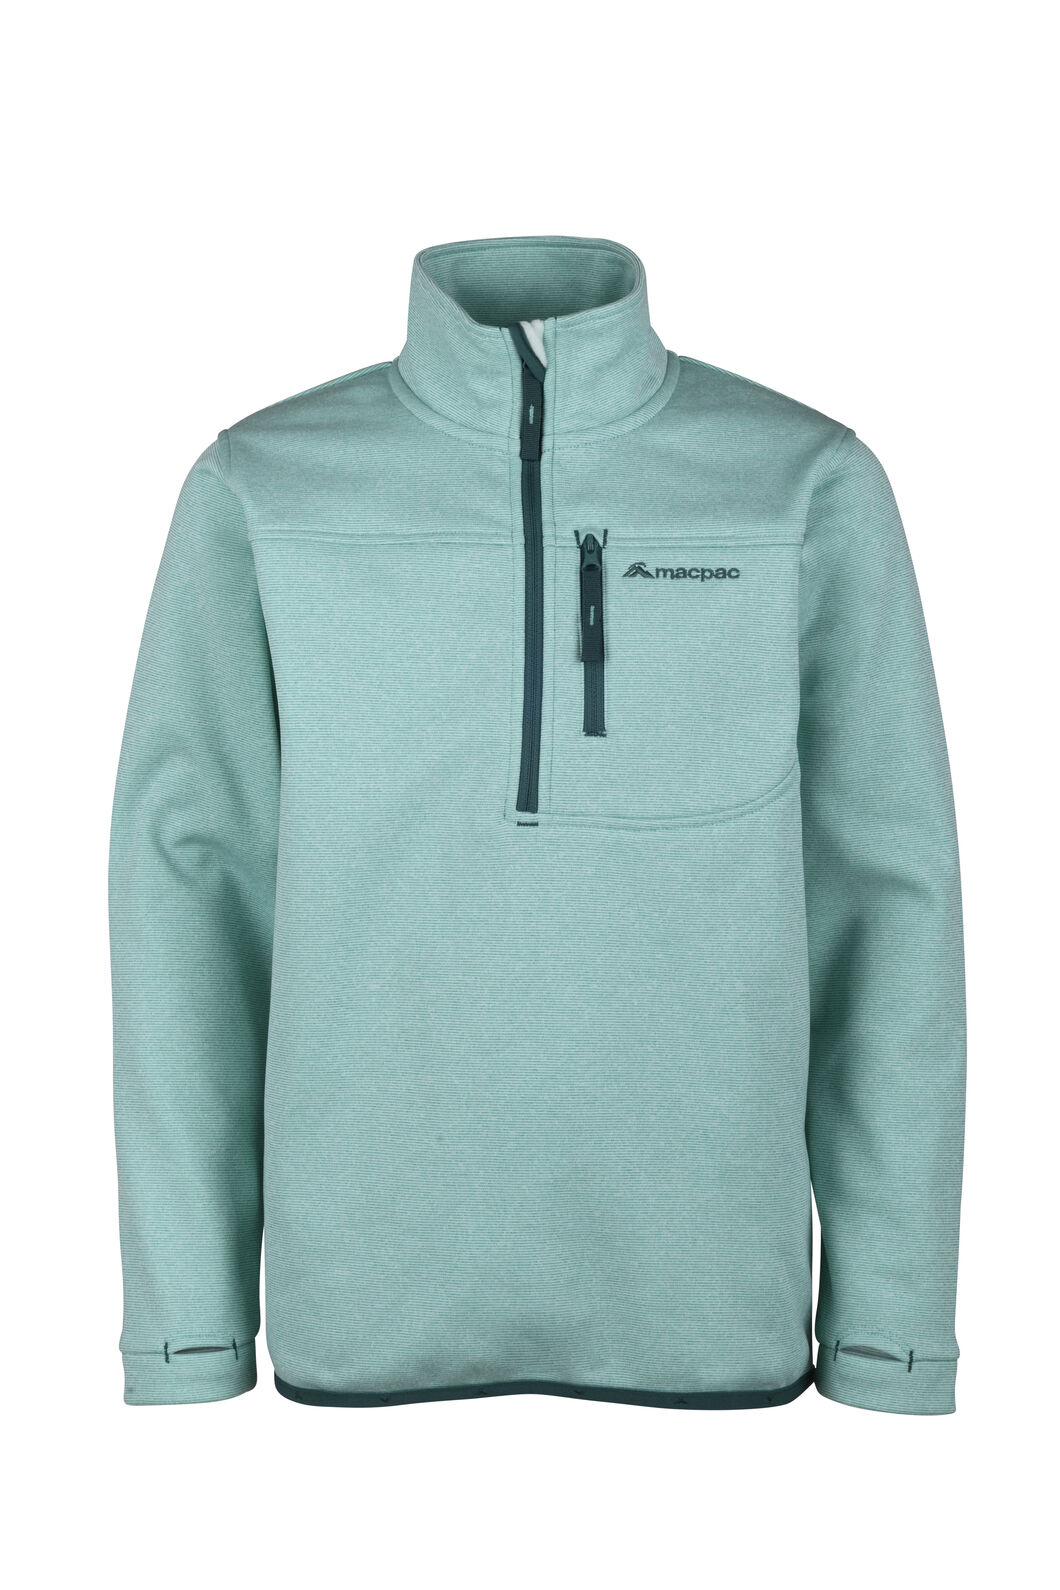 Macpac Kiwi Fleece Pullover - Kids', Waterfall, hi-res